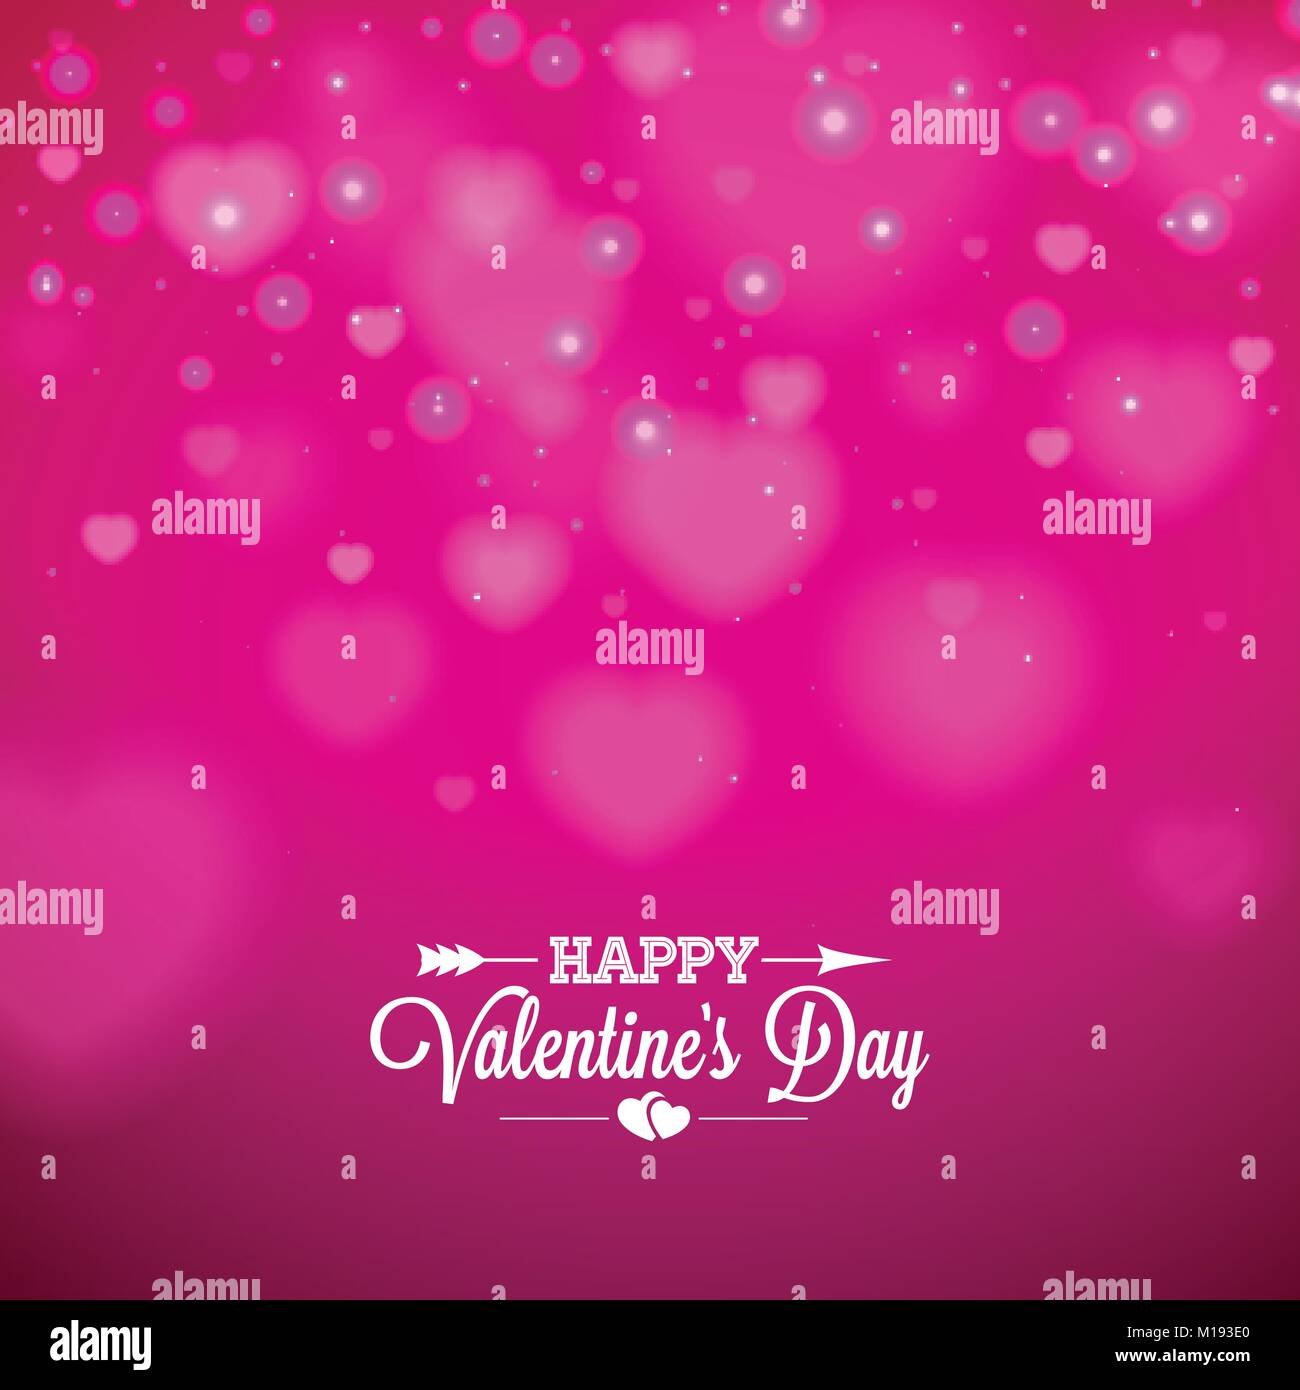 Happy valentines day background with shiny heart and typography happy valentines day background with shiny heart and typography letter vector holiday wedding and love theme design for greeting card party invitation or stopboris Images